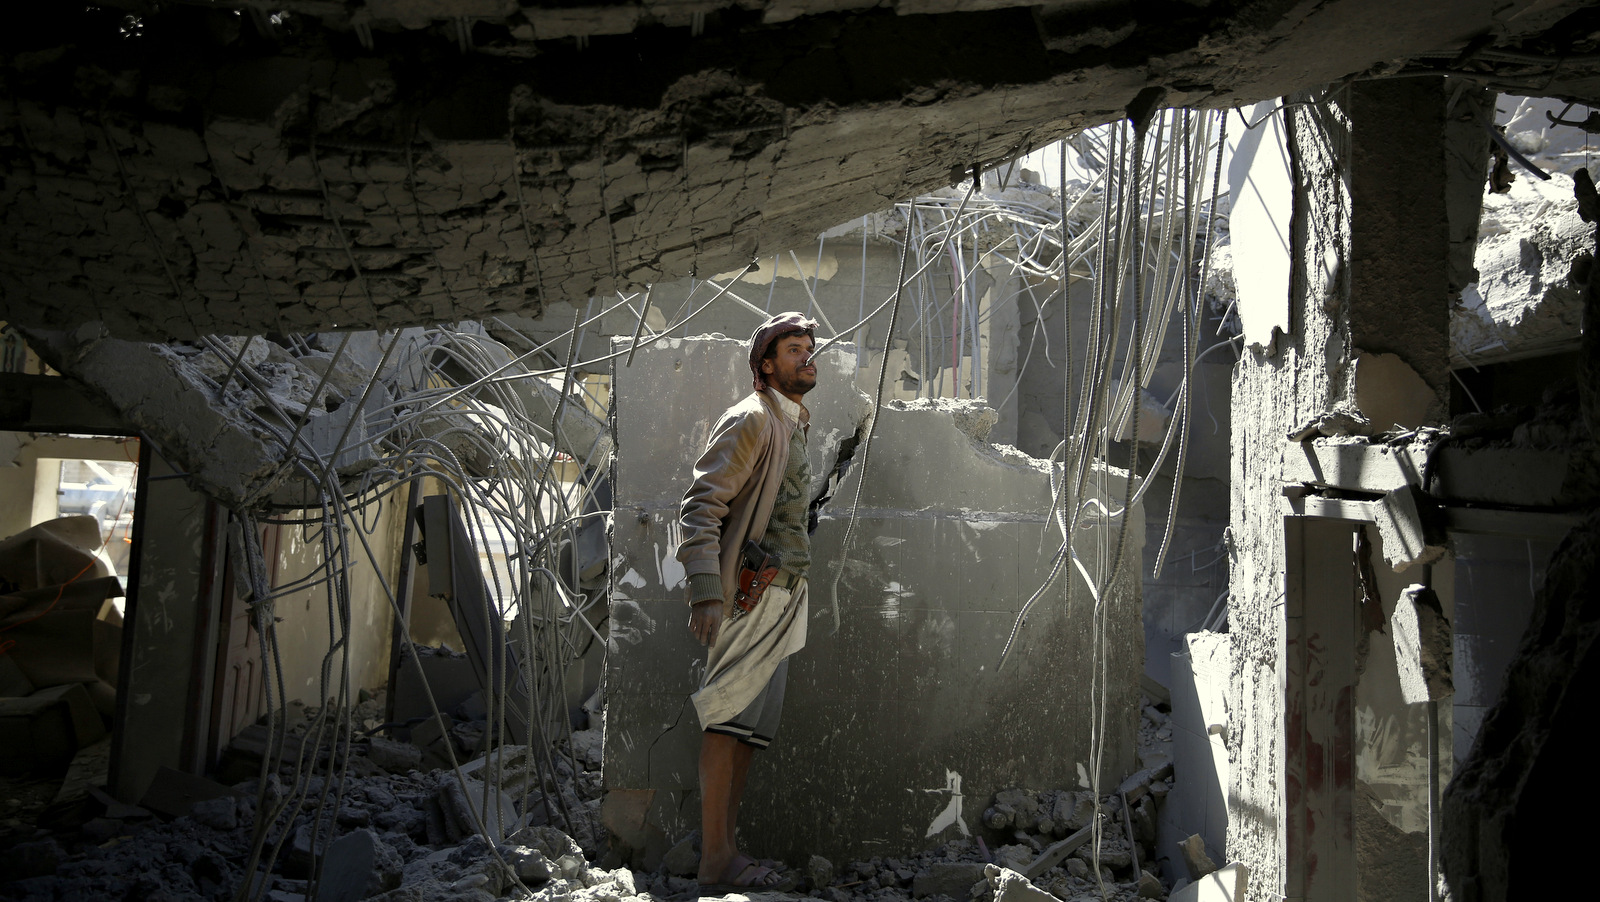 A man inspects his home destroyed by Saudi-led airstrikes in Sanaa, Yemen, Monday, Jan. 4, 2016. According to U.N. figures, the war in Yemen has killed at least 5,884 people since March, when fighting escalated after the Saudi-led coalition began launching airstrikes claiming to be targeting the Houthi rebels. (AP Photo/Hani Mohammed)